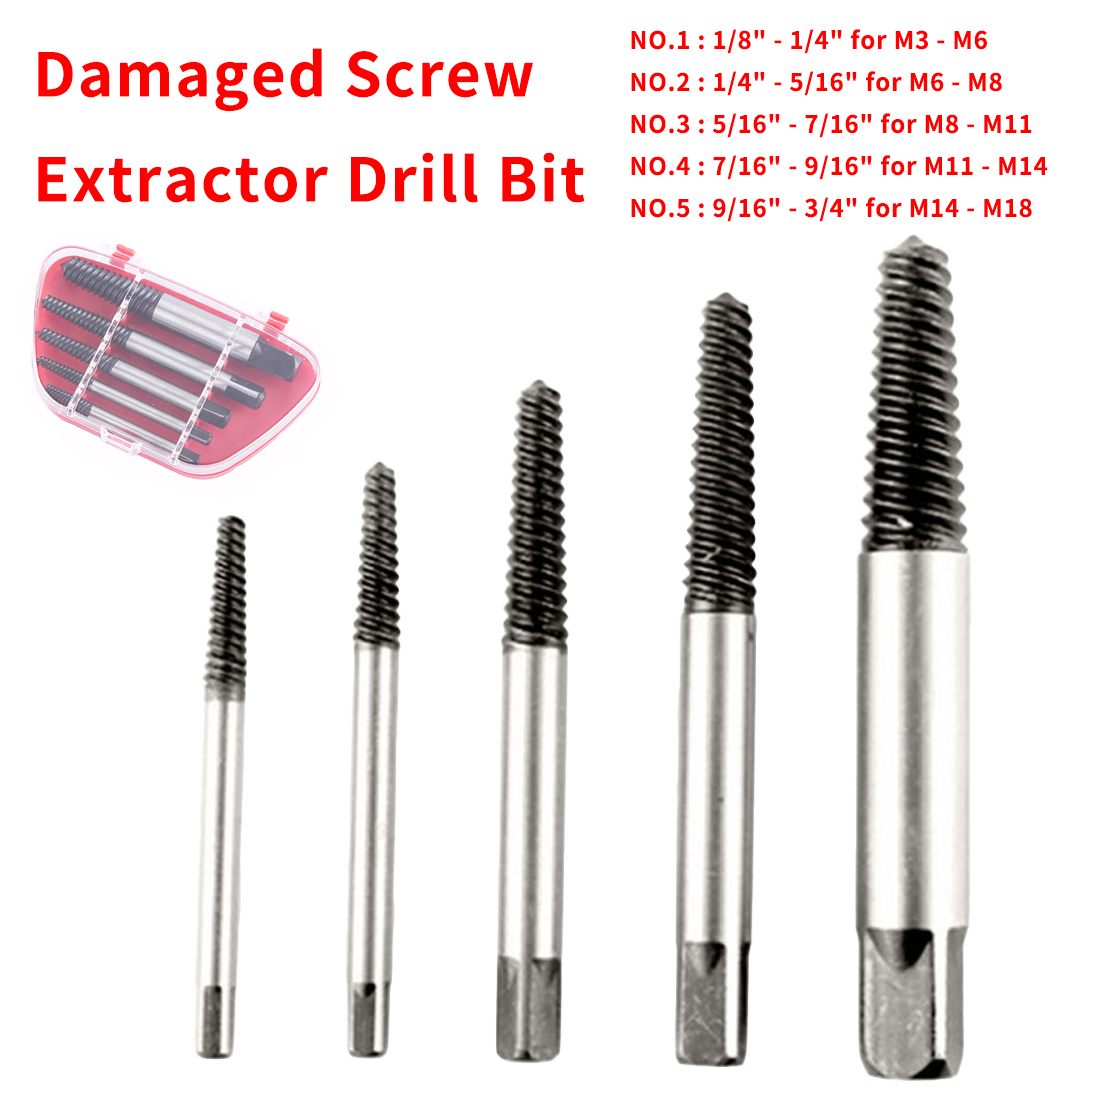 Broken Bolt Stud Remover Tools 5pcs High Carbon Steel Damaged Screw Extractor Easy Out Set Drill Bits With/Without Case